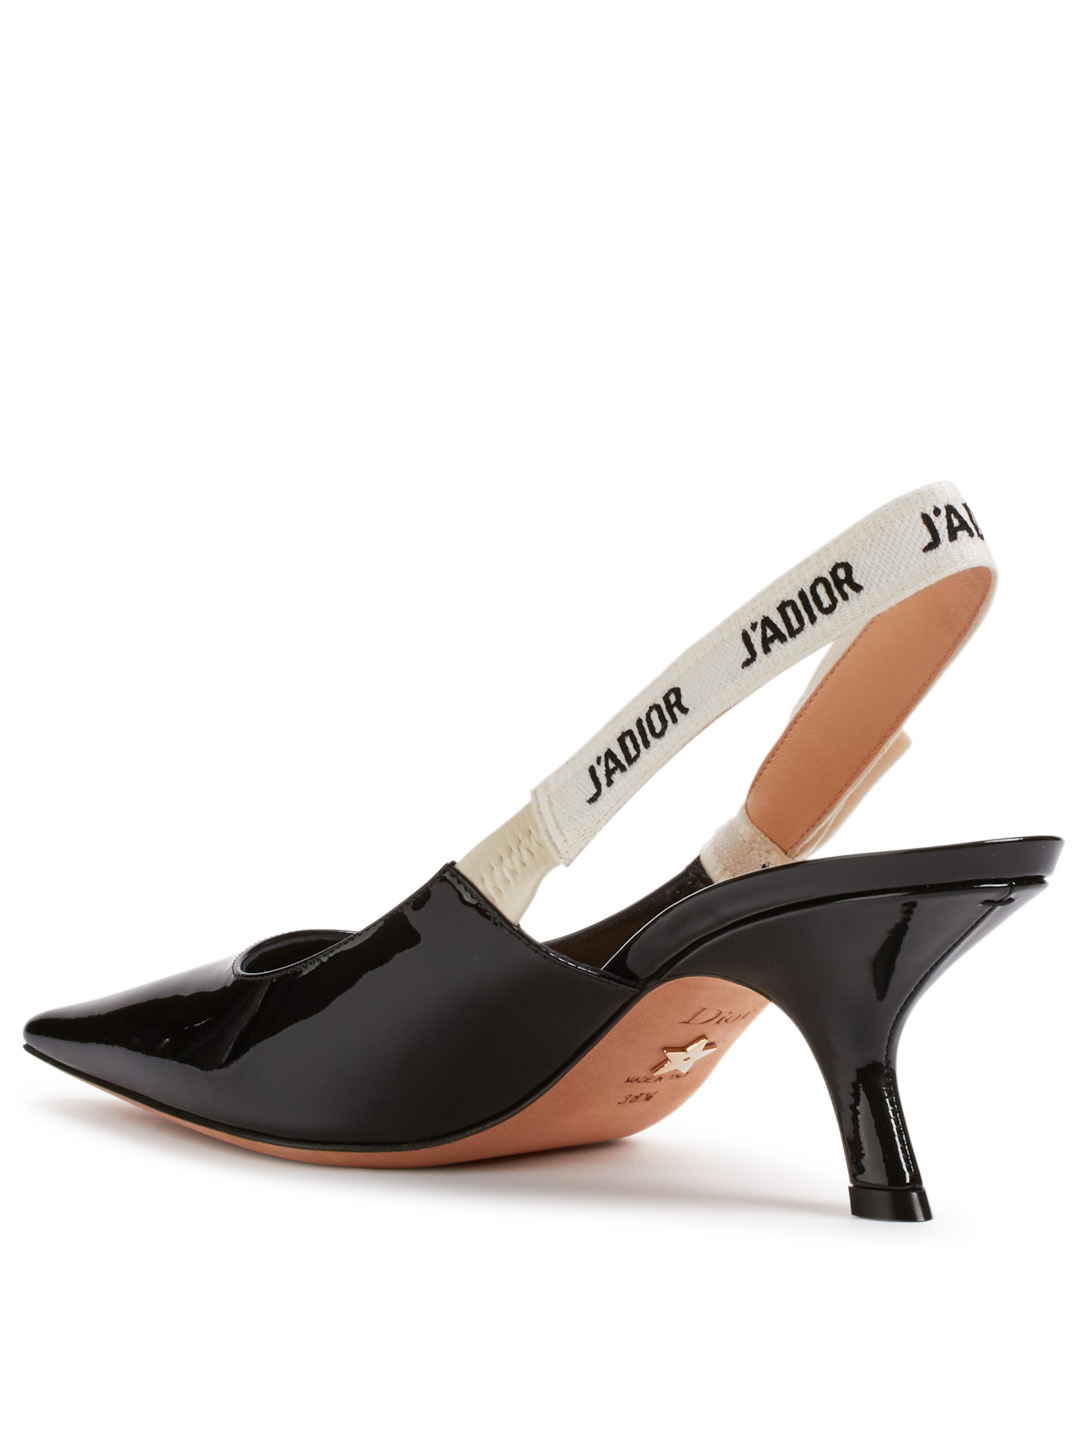 DIOR J'Adior Patent Leather Slingback Pumps Women's Black